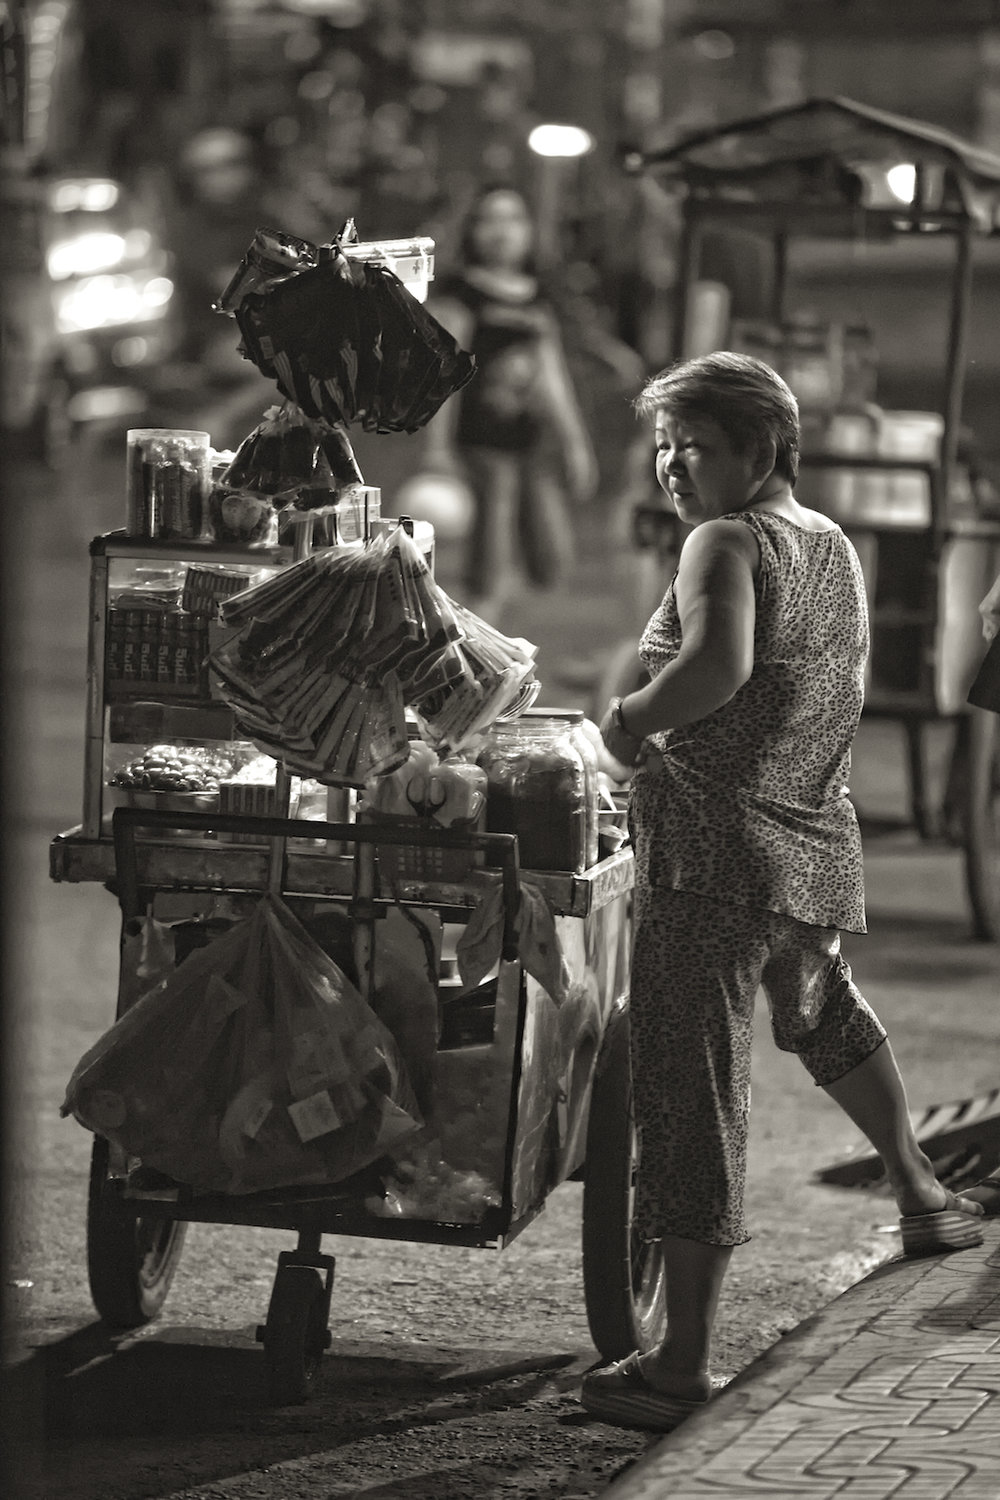 A woman sells her goods at night in Ho Chi Minh City, Vietnam.  Image by New Orleans based travel photographer, Marc Pagani - marcpagani.com